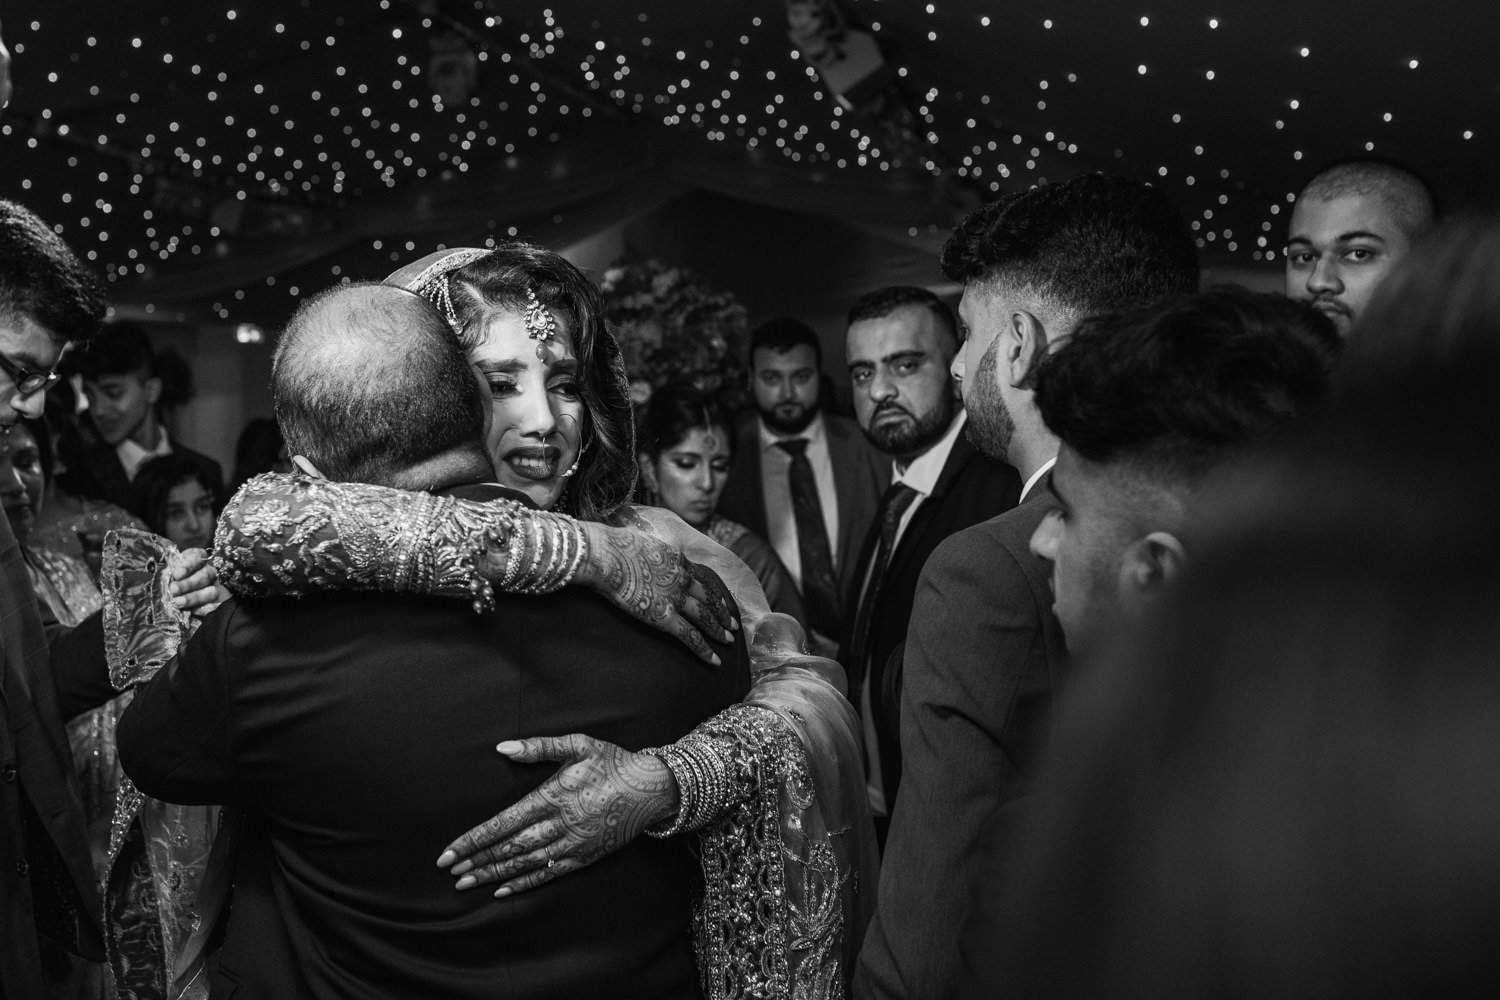 Natural candid Asian Wedding Photographer London at an Indian wedding in Surrey